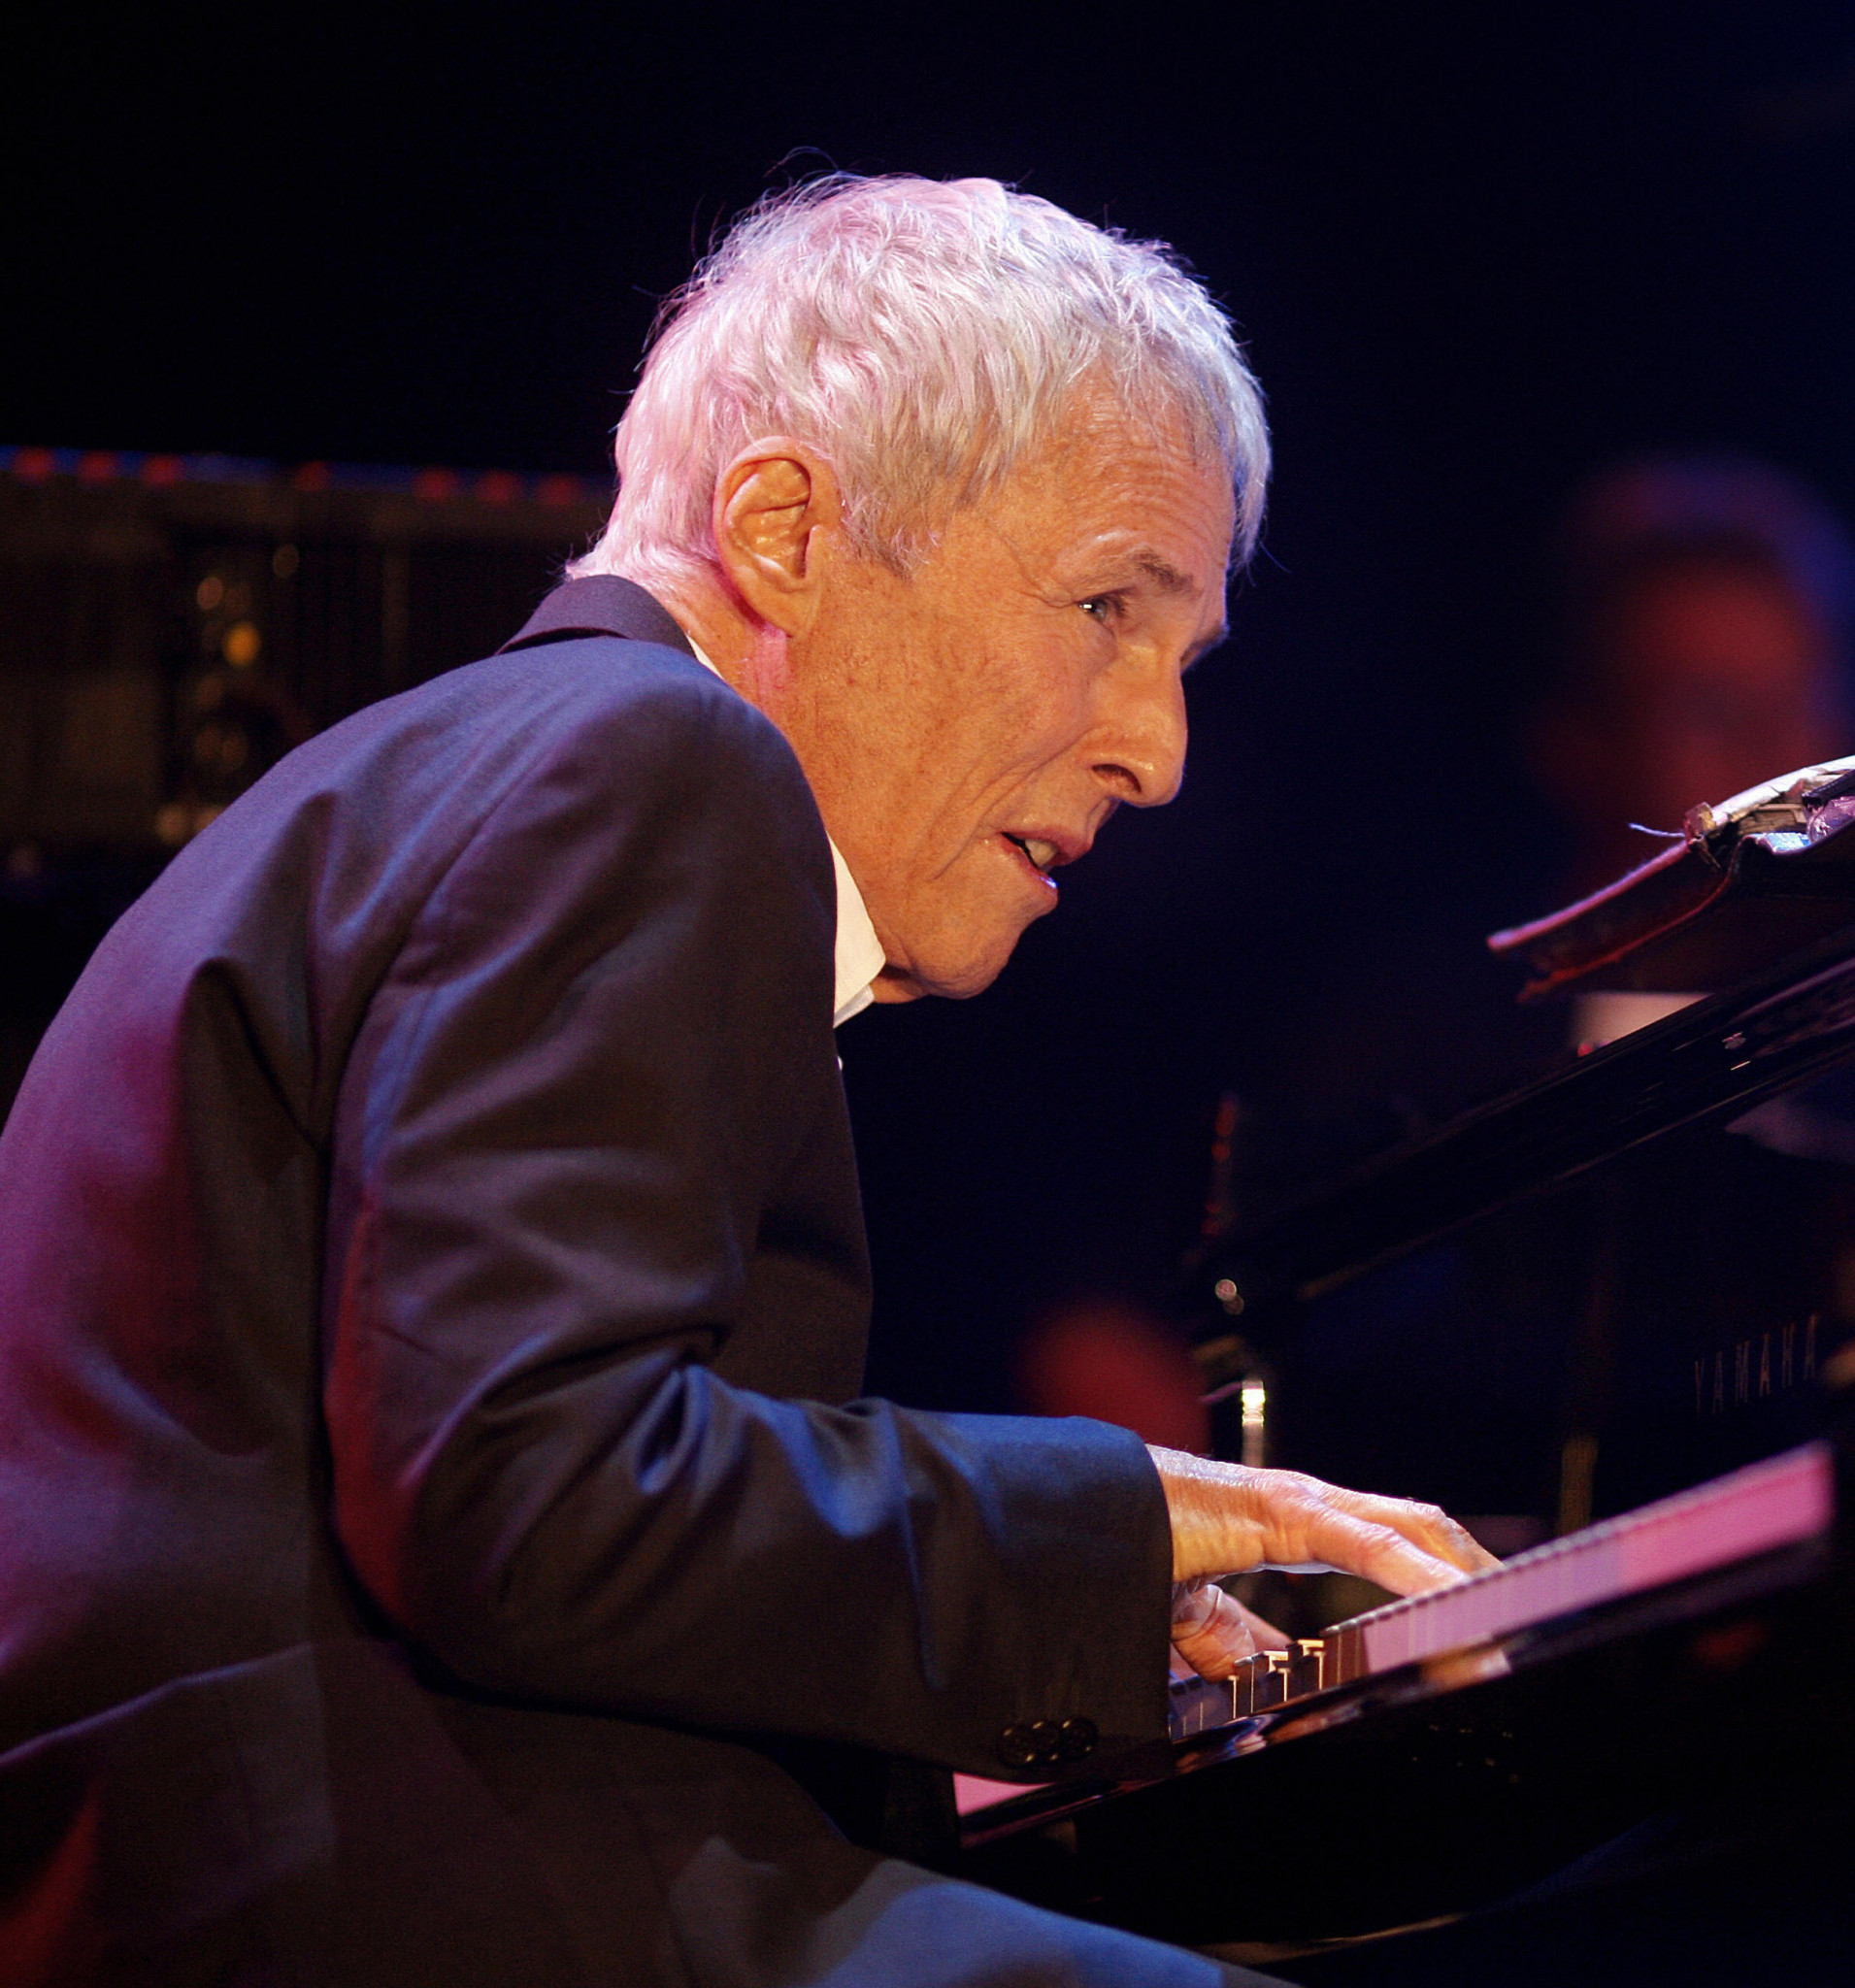 Luckily, Burt Bacharach was on hand in California to tell Alan Hubbard the way to San Jose ©Getty Images